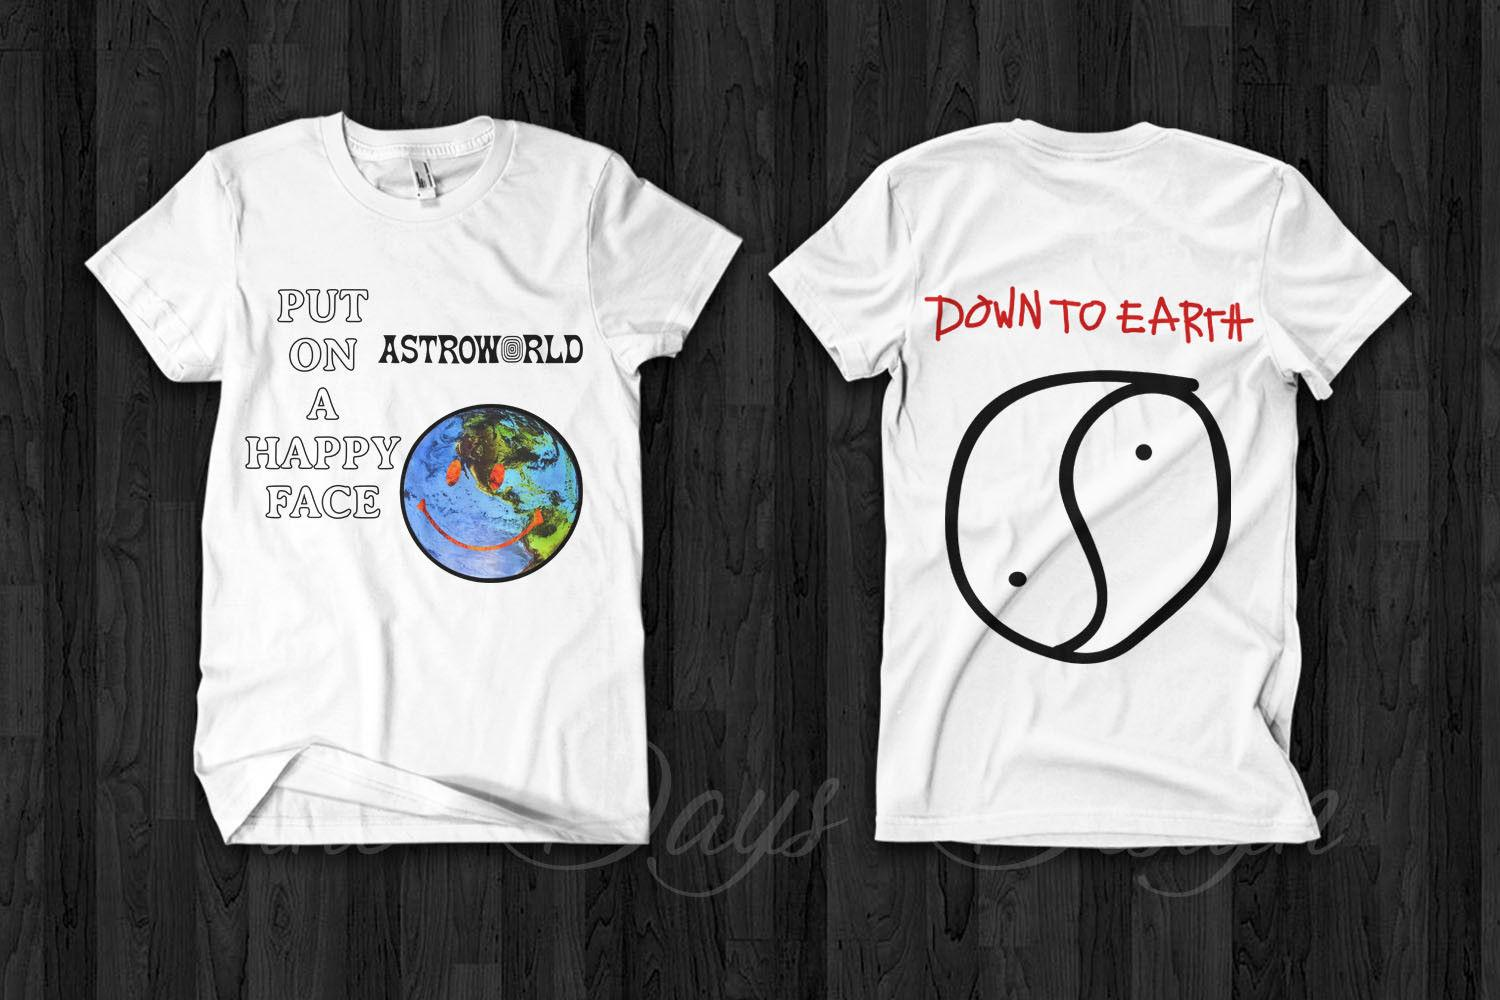 7caa54b48bd1 Travis Scott Astroworld Merch 2018 Anti Tour Down To Earth Official Logo T  Shirt Funny Tee Shirts Hipster O Neck Cool Tops Australia 2019 From  Guccitshirts, ...